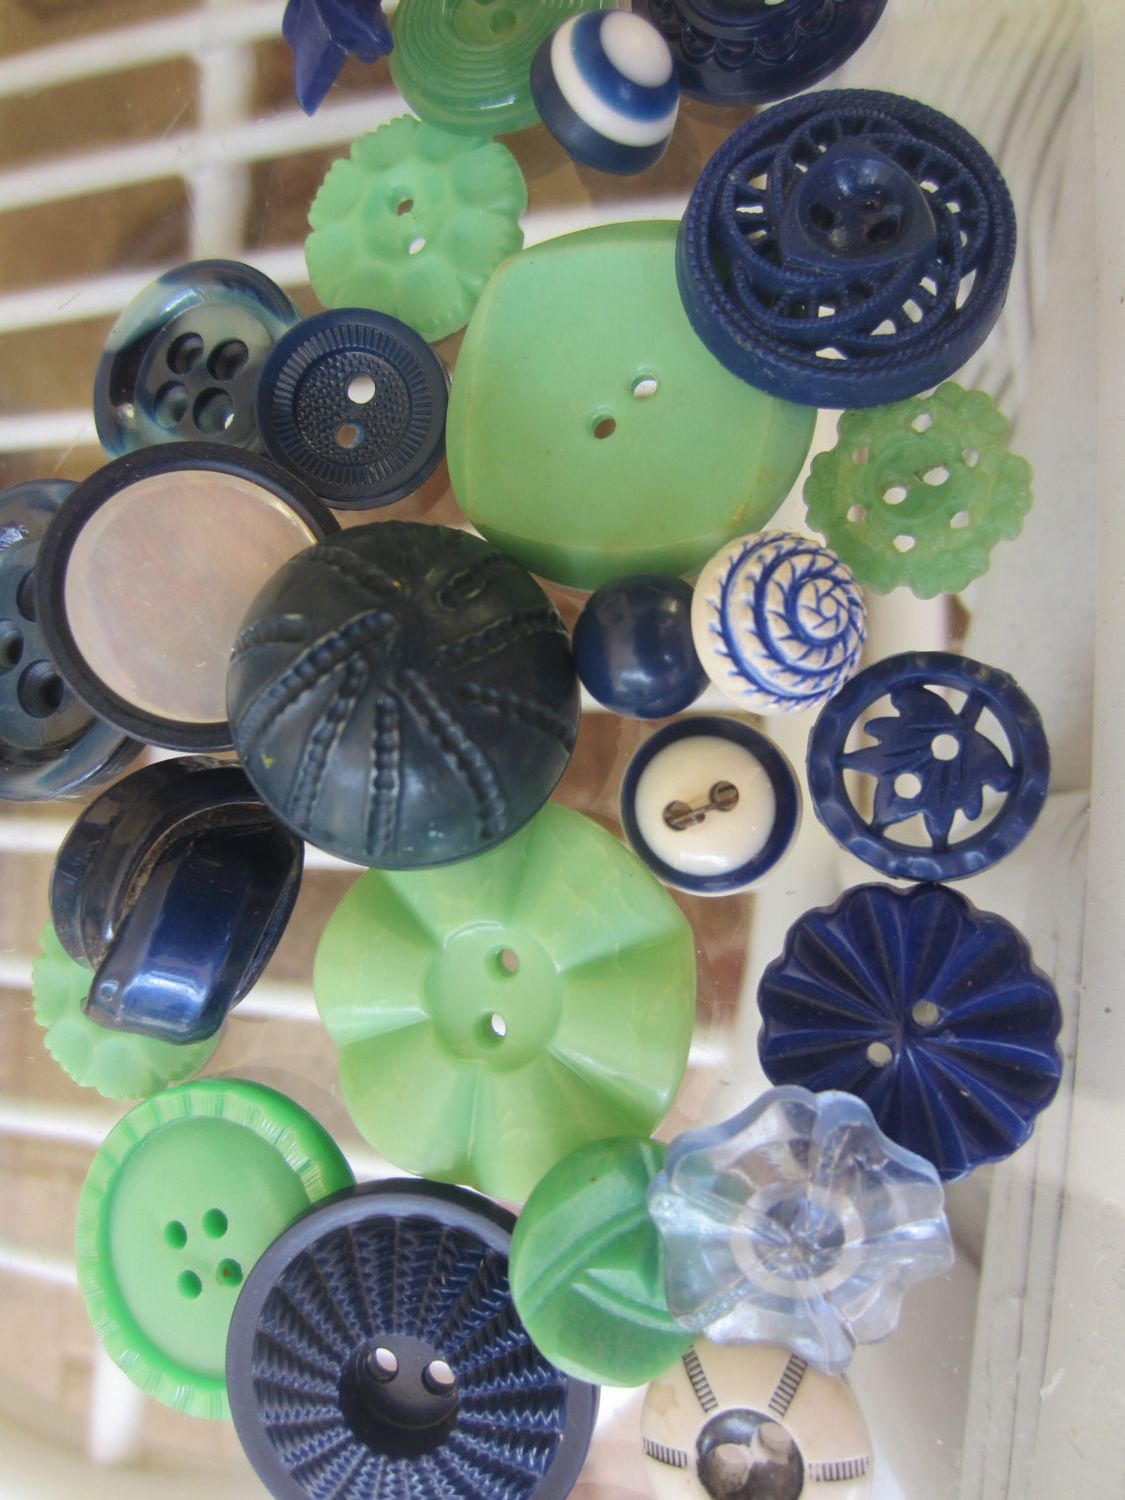 Vintage Buttons - Cottage chic mix of cadet blue, and green lot of 27, old and sweet( mar403) by pillowtalkswf on Etsy